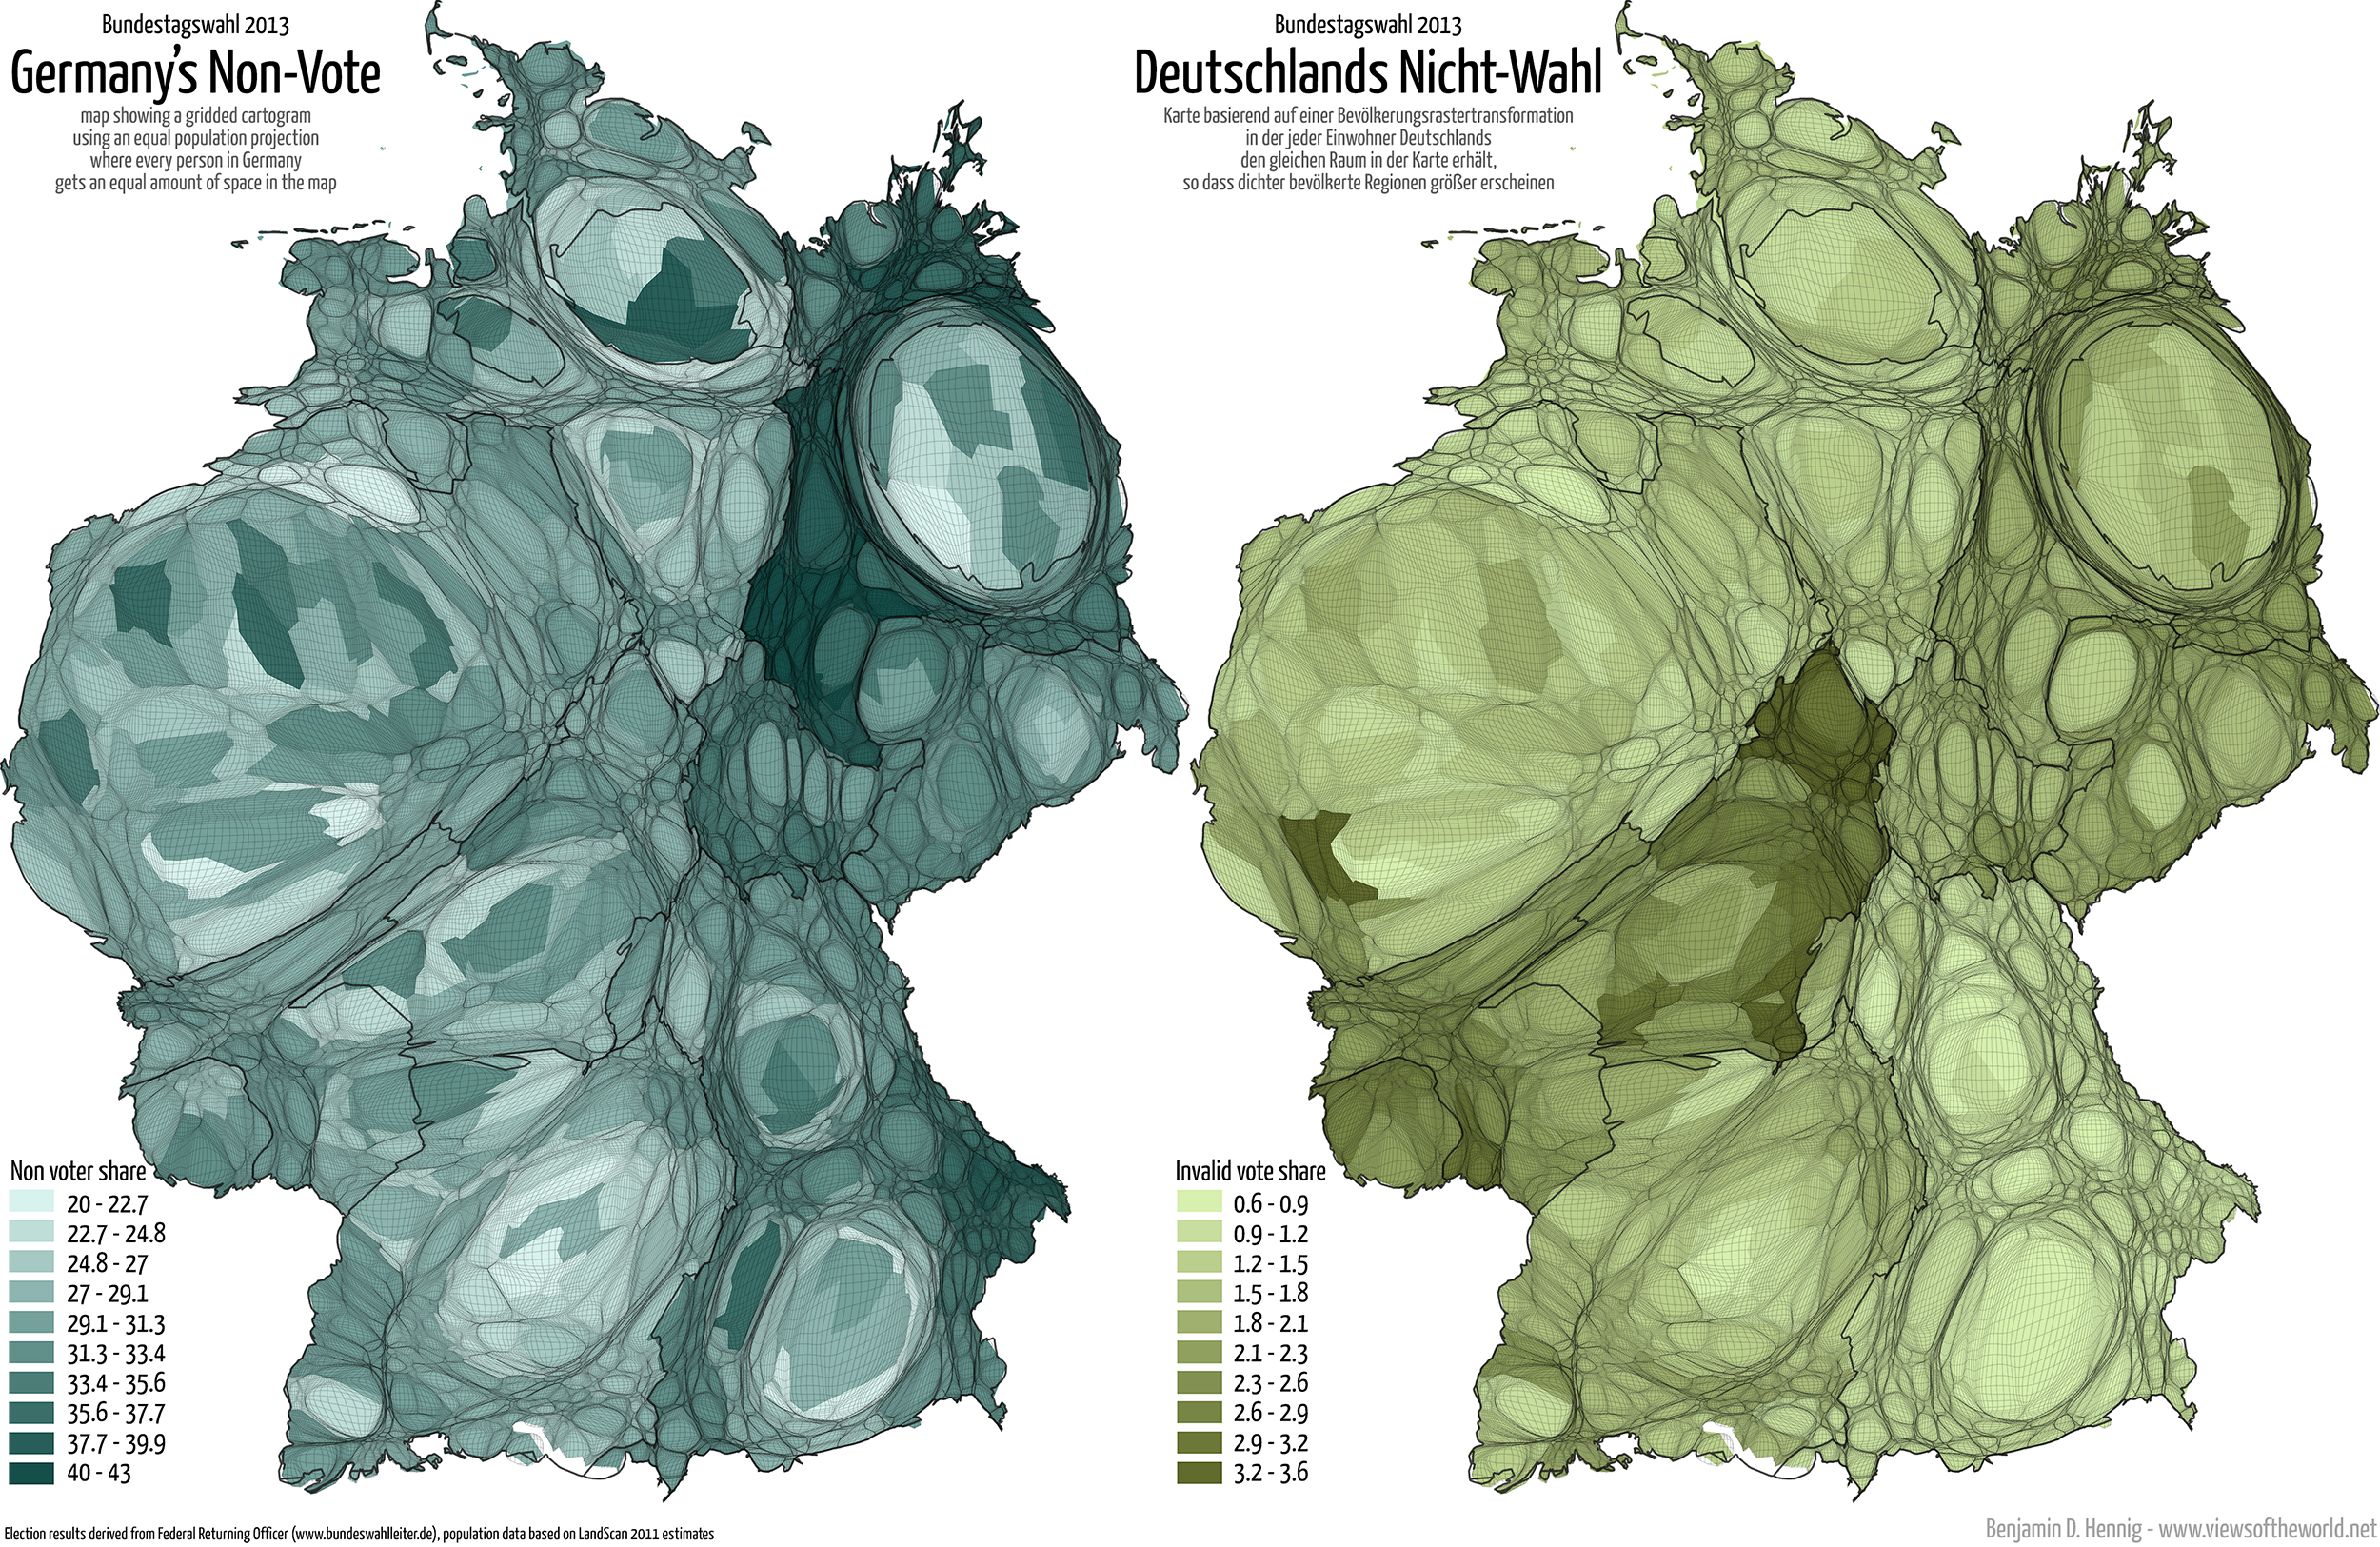 Equal population projection map of the spoilt votes at the 2013 German General Election / Bevölkerungsrastertransformationskarte der ungültigen Stimmen bei der Bundestagswahl 2013